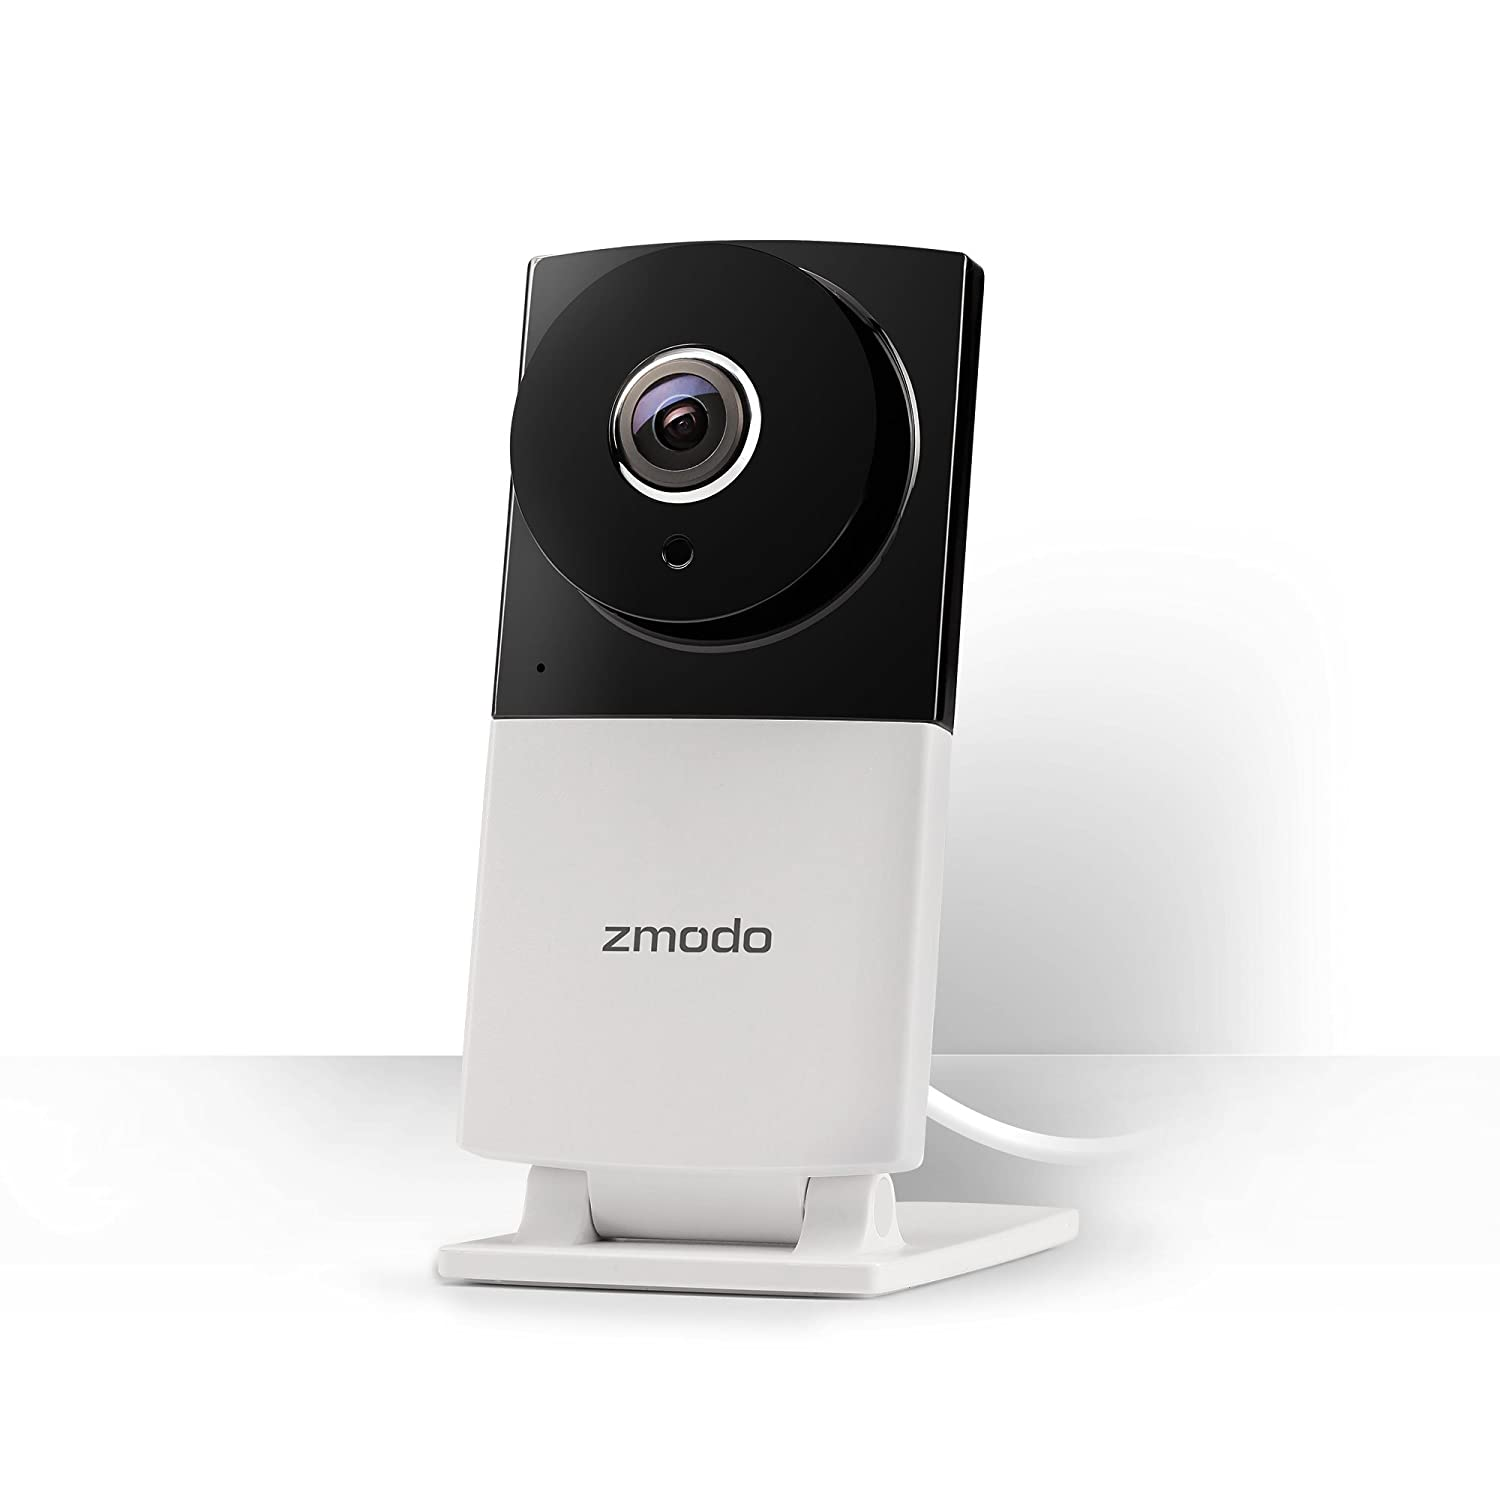 Zmodo Sight 180 C 180° Wide Viewing Angle 1080p Full HD Wireless Security IP Camera Night Vision and Two Way Audio - Cloud Service Available